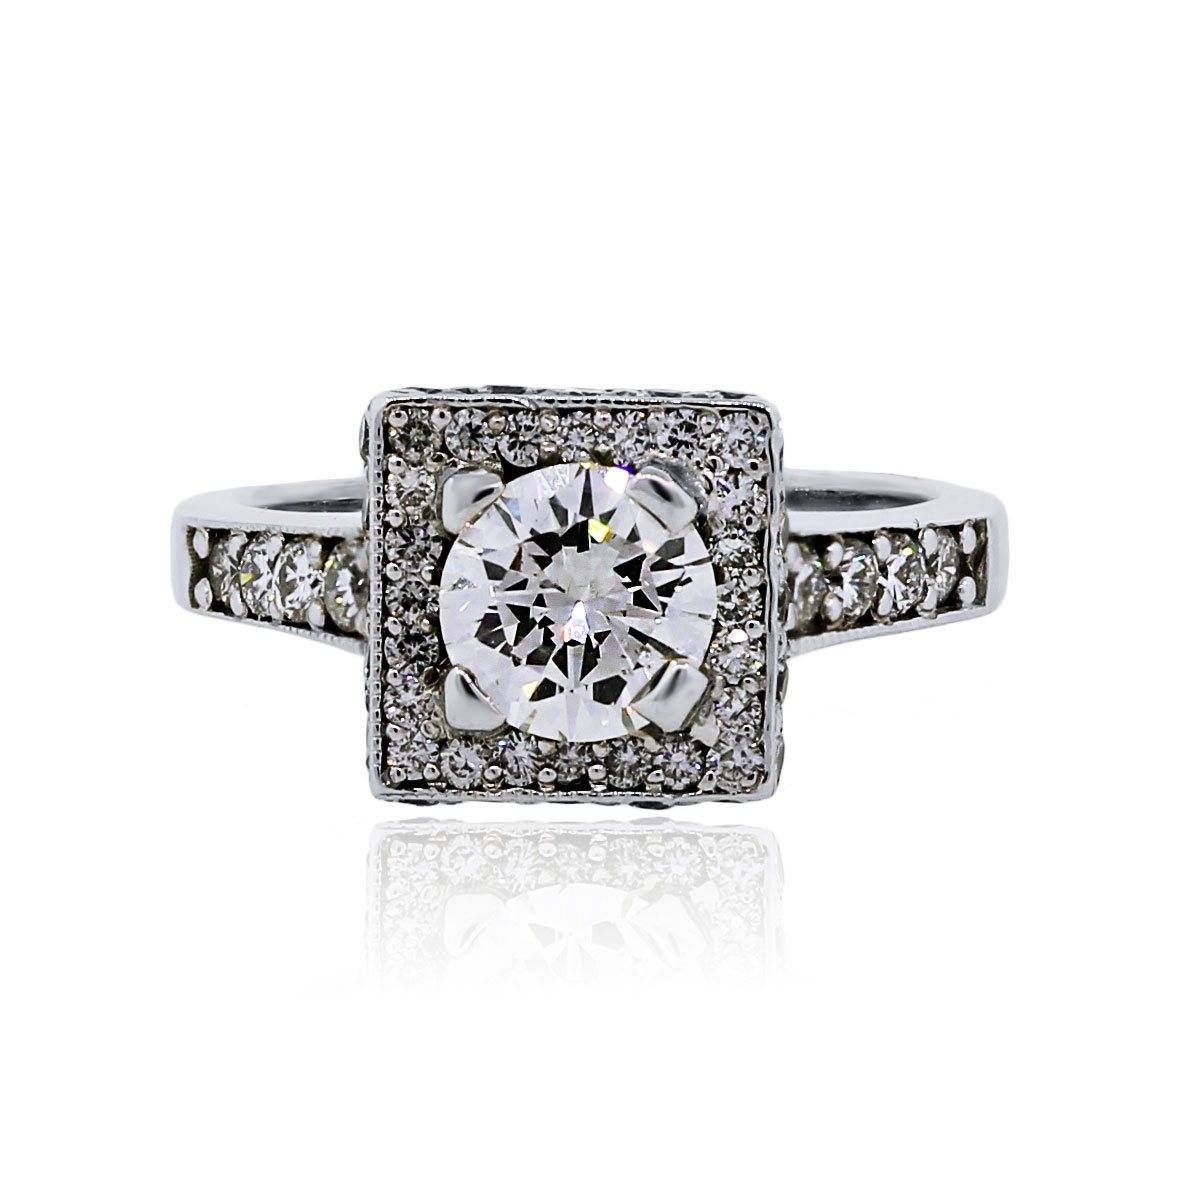 What does a $ 10000 Engagement Ring Look Like? - Raymond ...